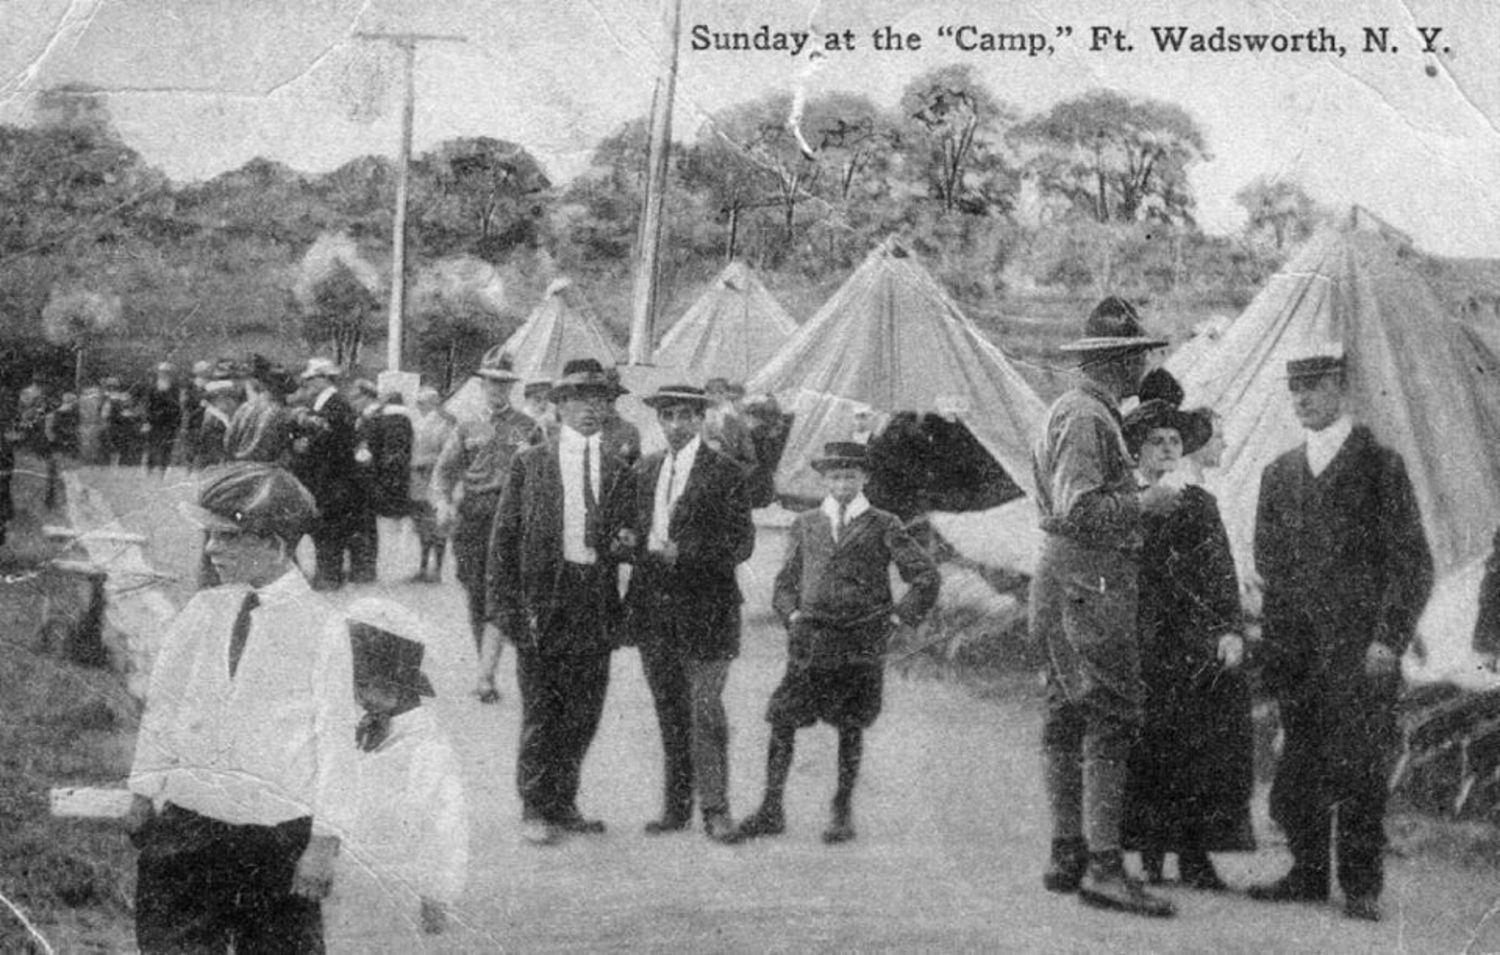 """Sunday at the 'Camp,' Fort Wadsworth."" Photo circa 1917."